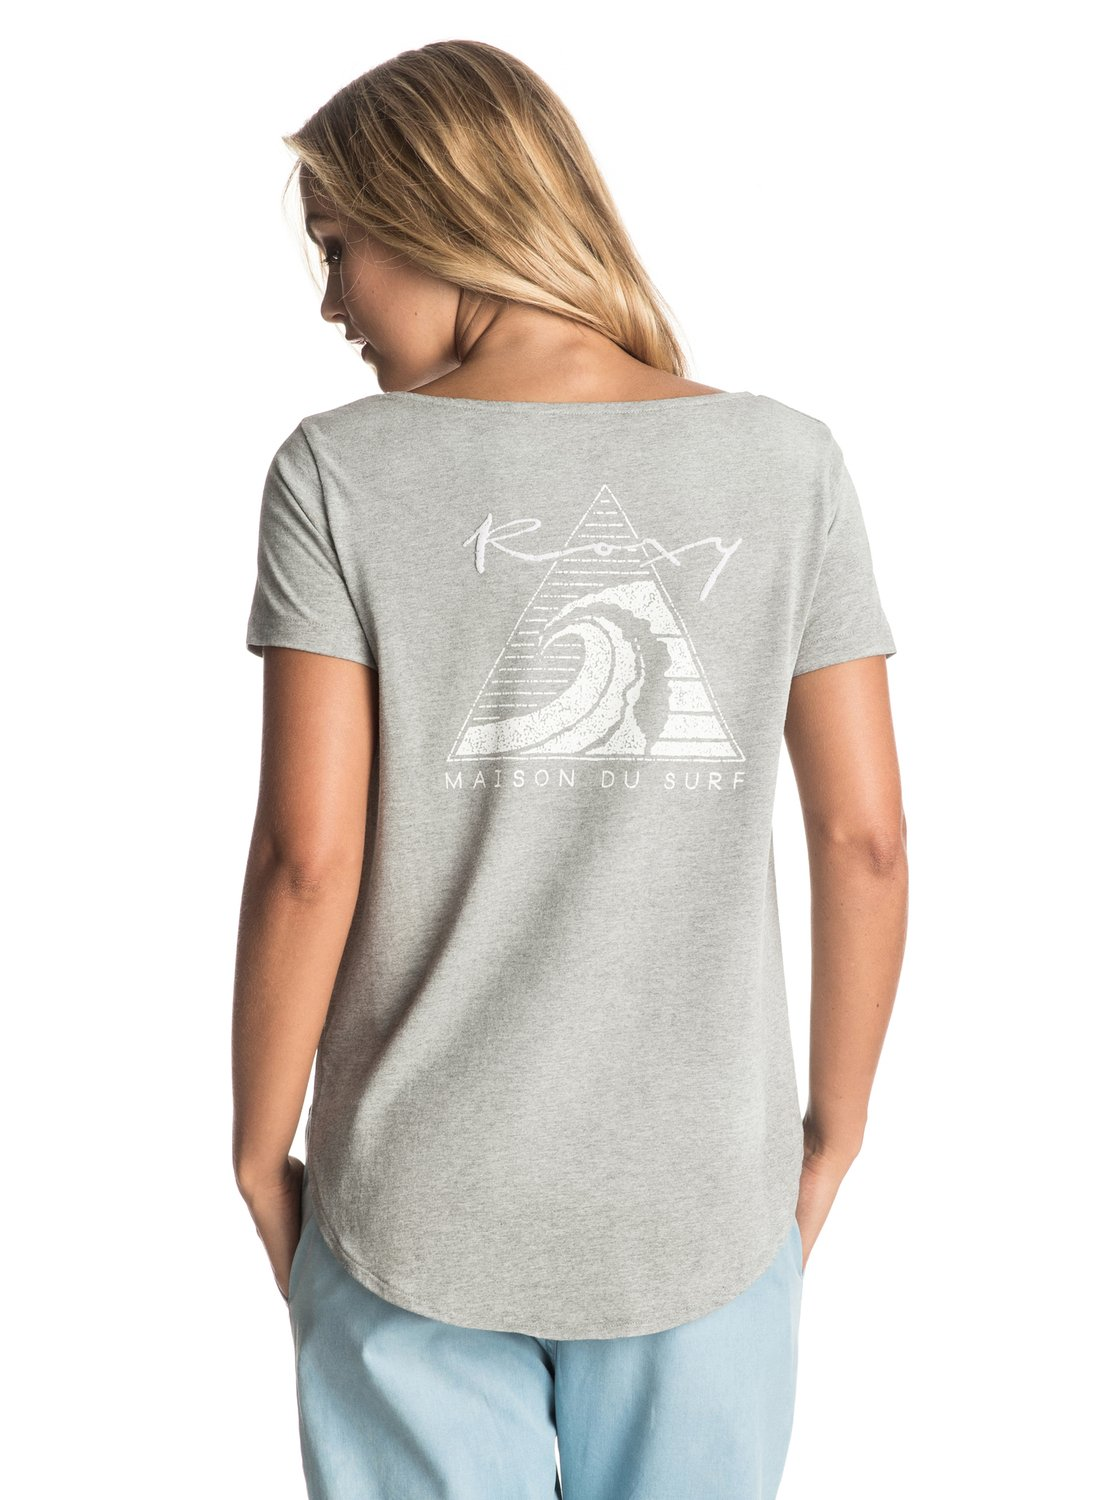 tulip side washed maison du surf t shirt 3613372445439